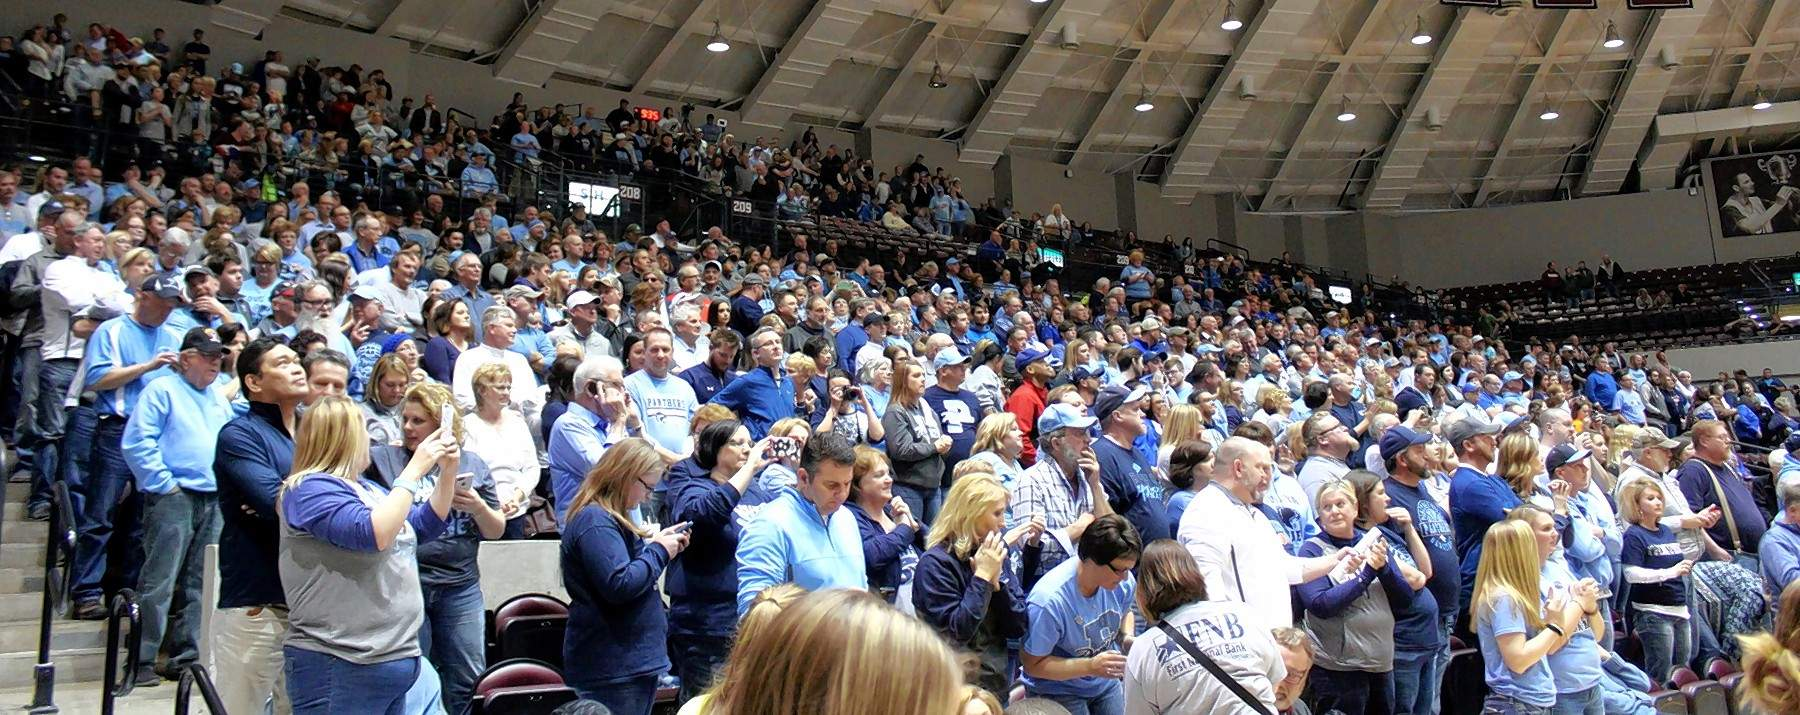 Pinckneyville fans cover the SIU Arena Tuesday in a sea of Panther Blue.